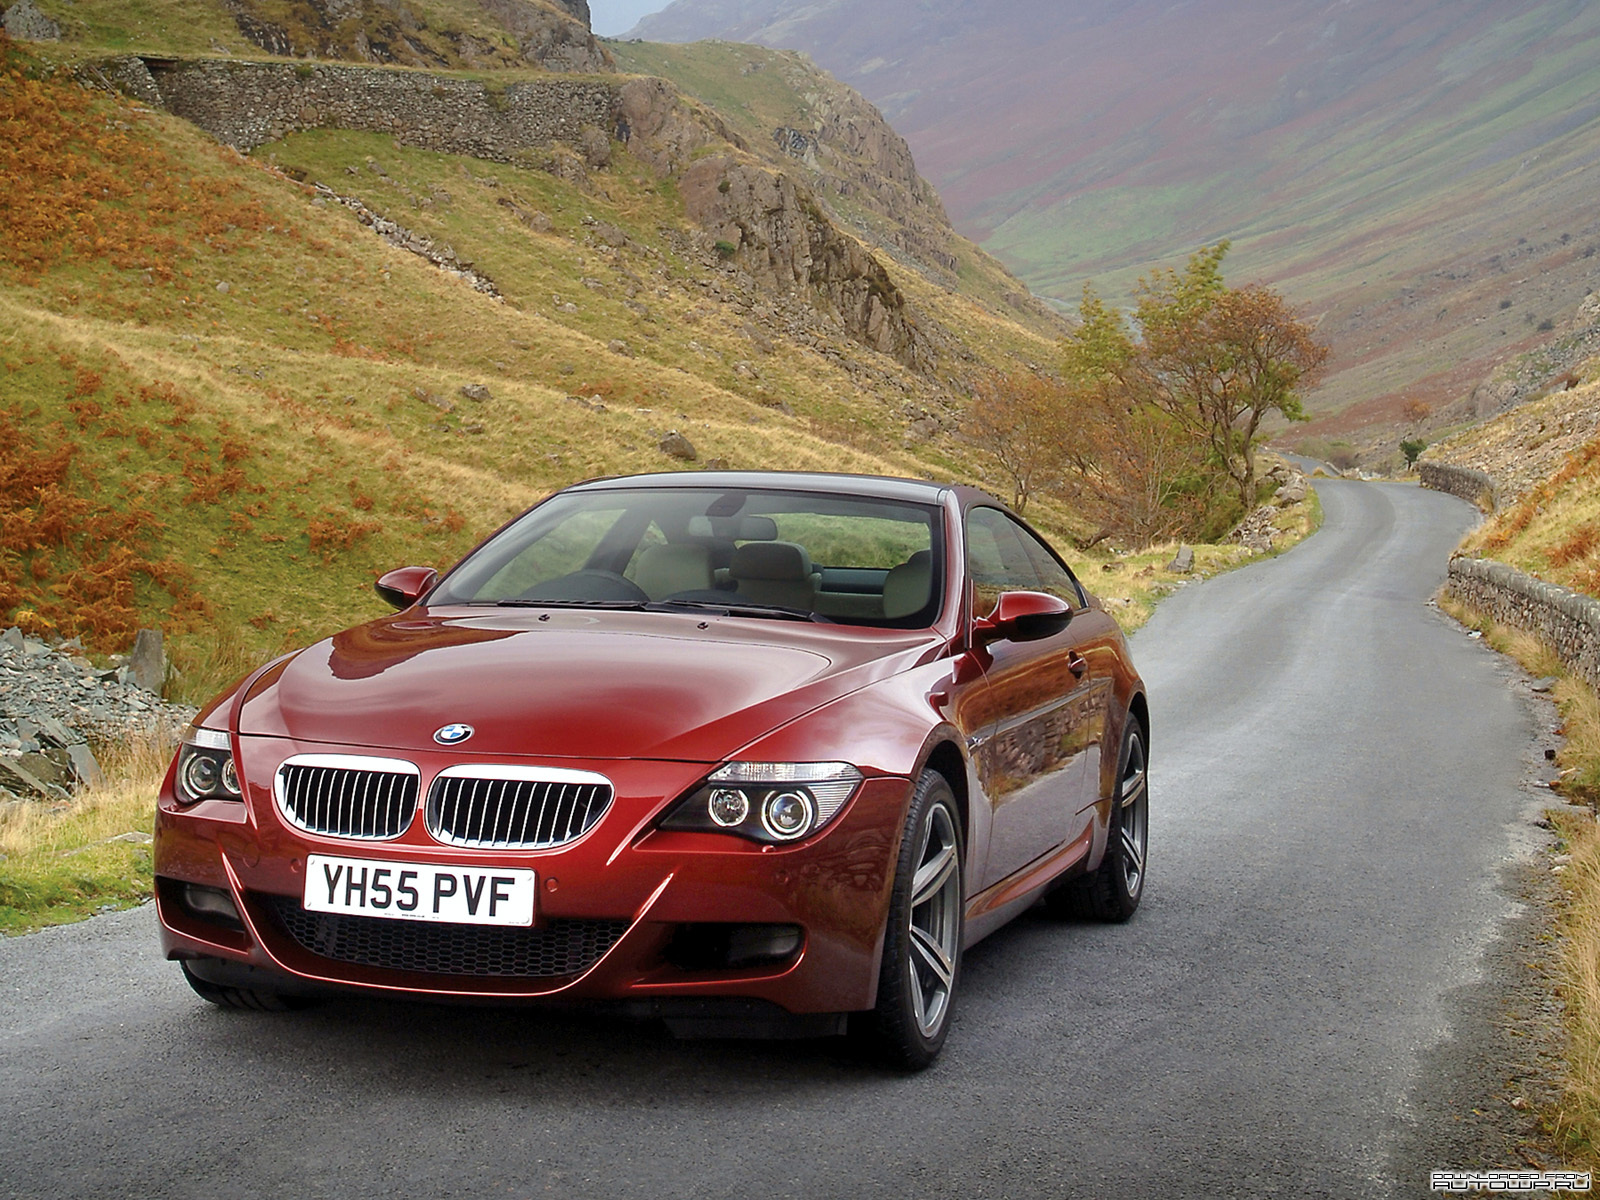 bmw m6 e63 photos photogallery with 94 pics. Black Bedroom Furniture Sets. Home Design Ideas